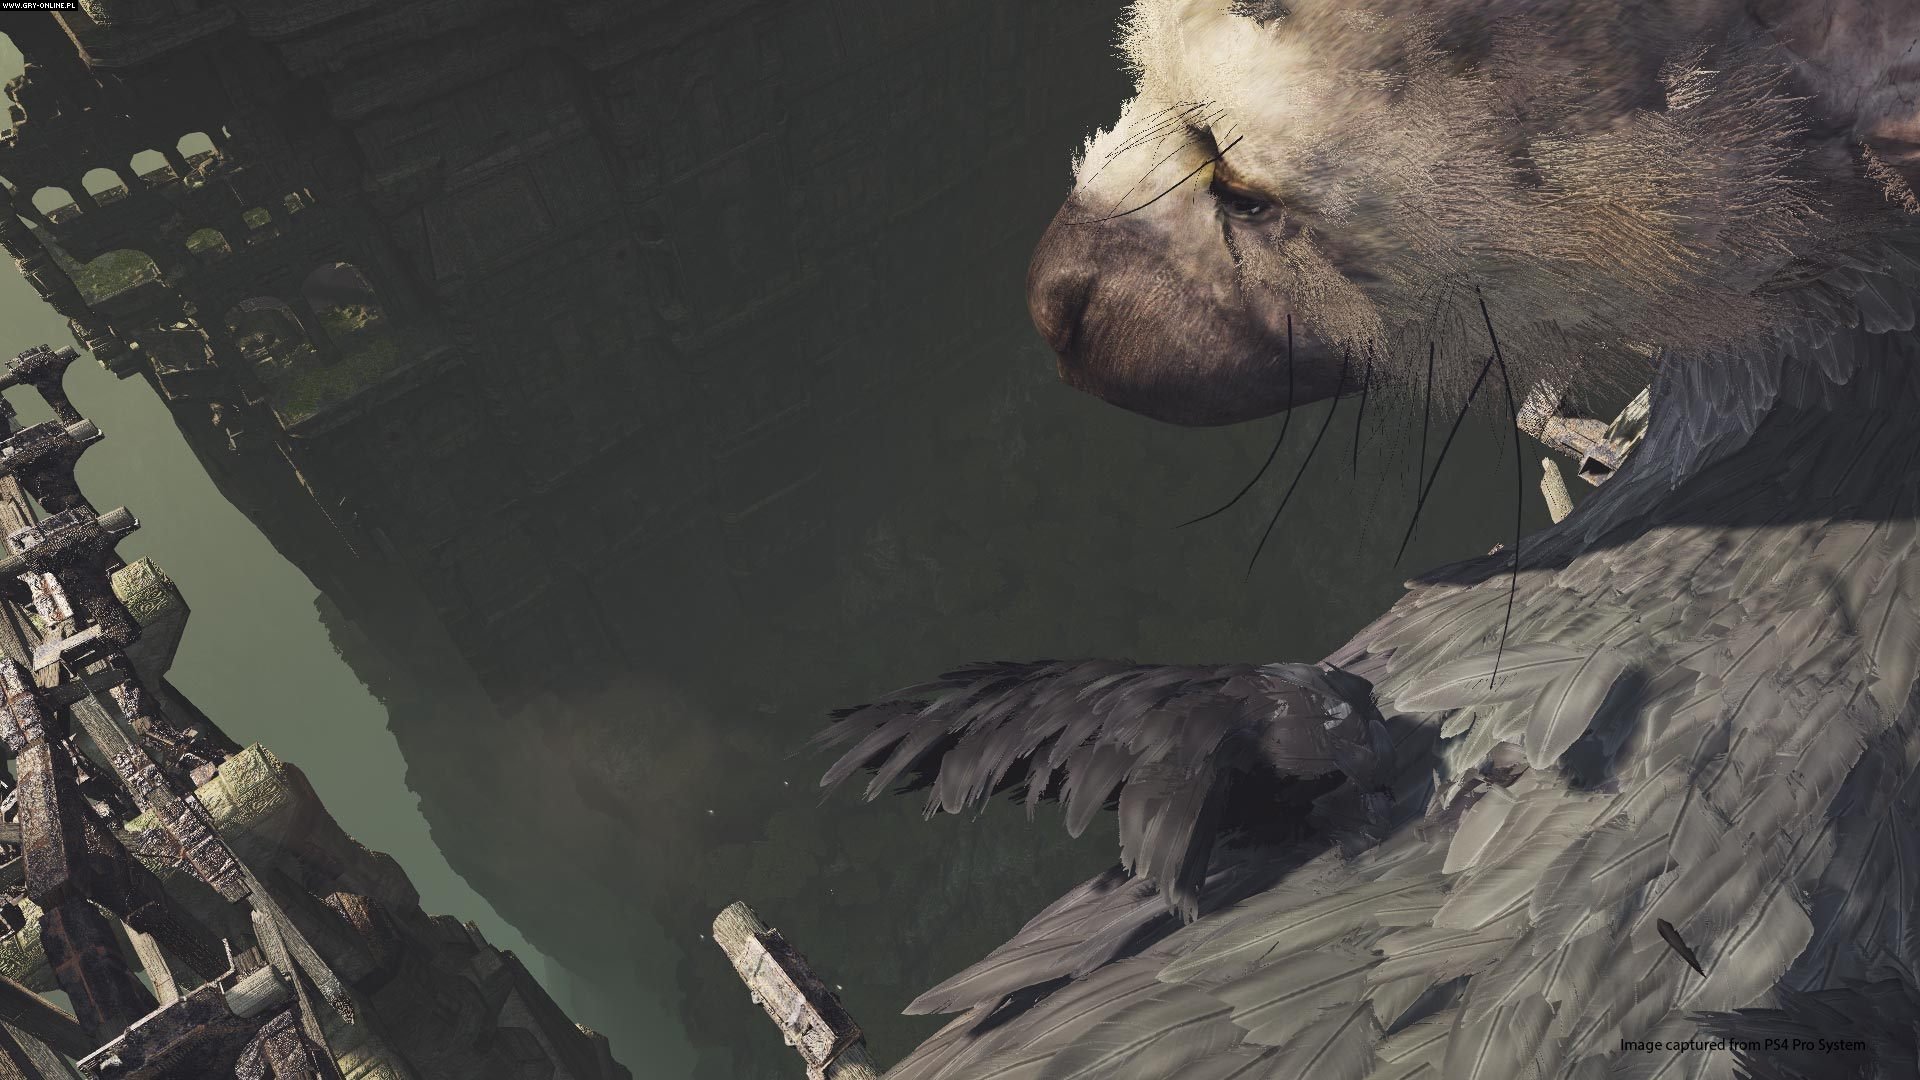 The Last Guardian VR Demo PS4 Games Image 10/10, Sony Interactive Entertainment